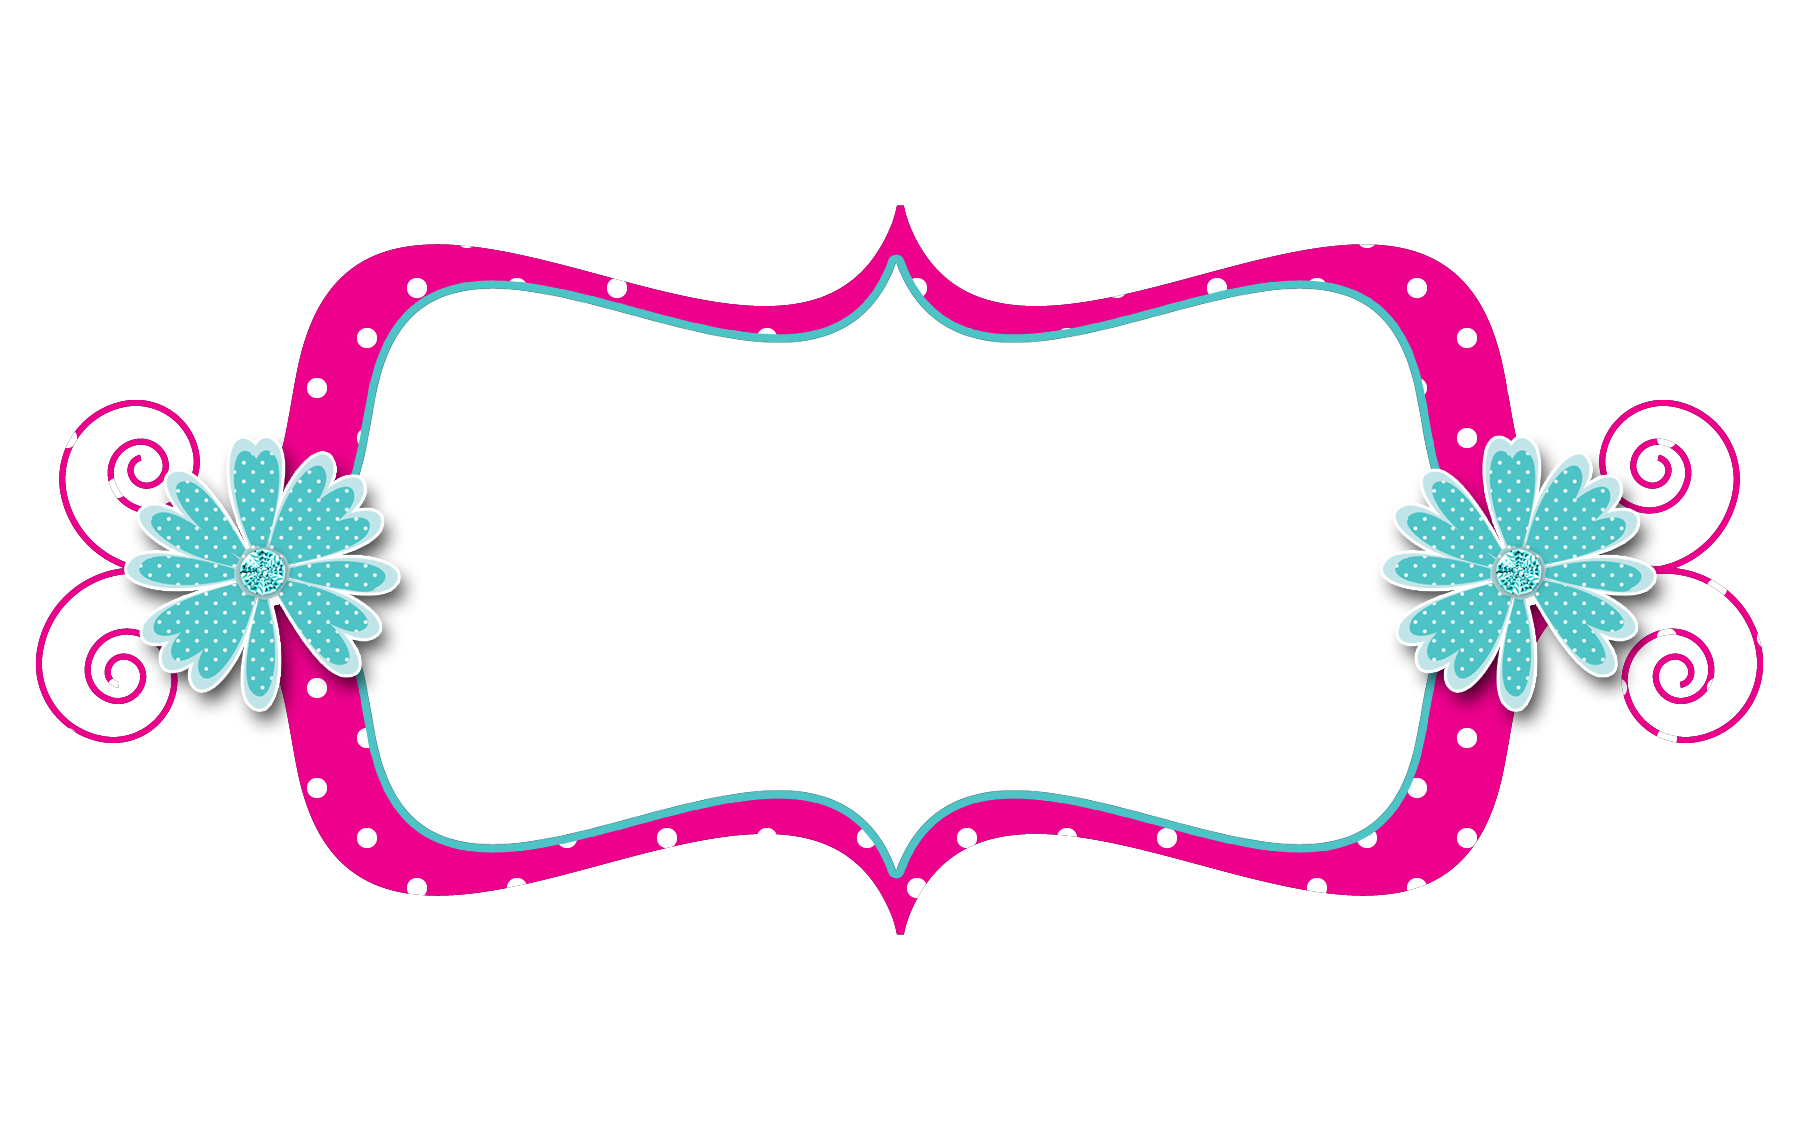 Glitter clipart cute pink bow. Clip art all things